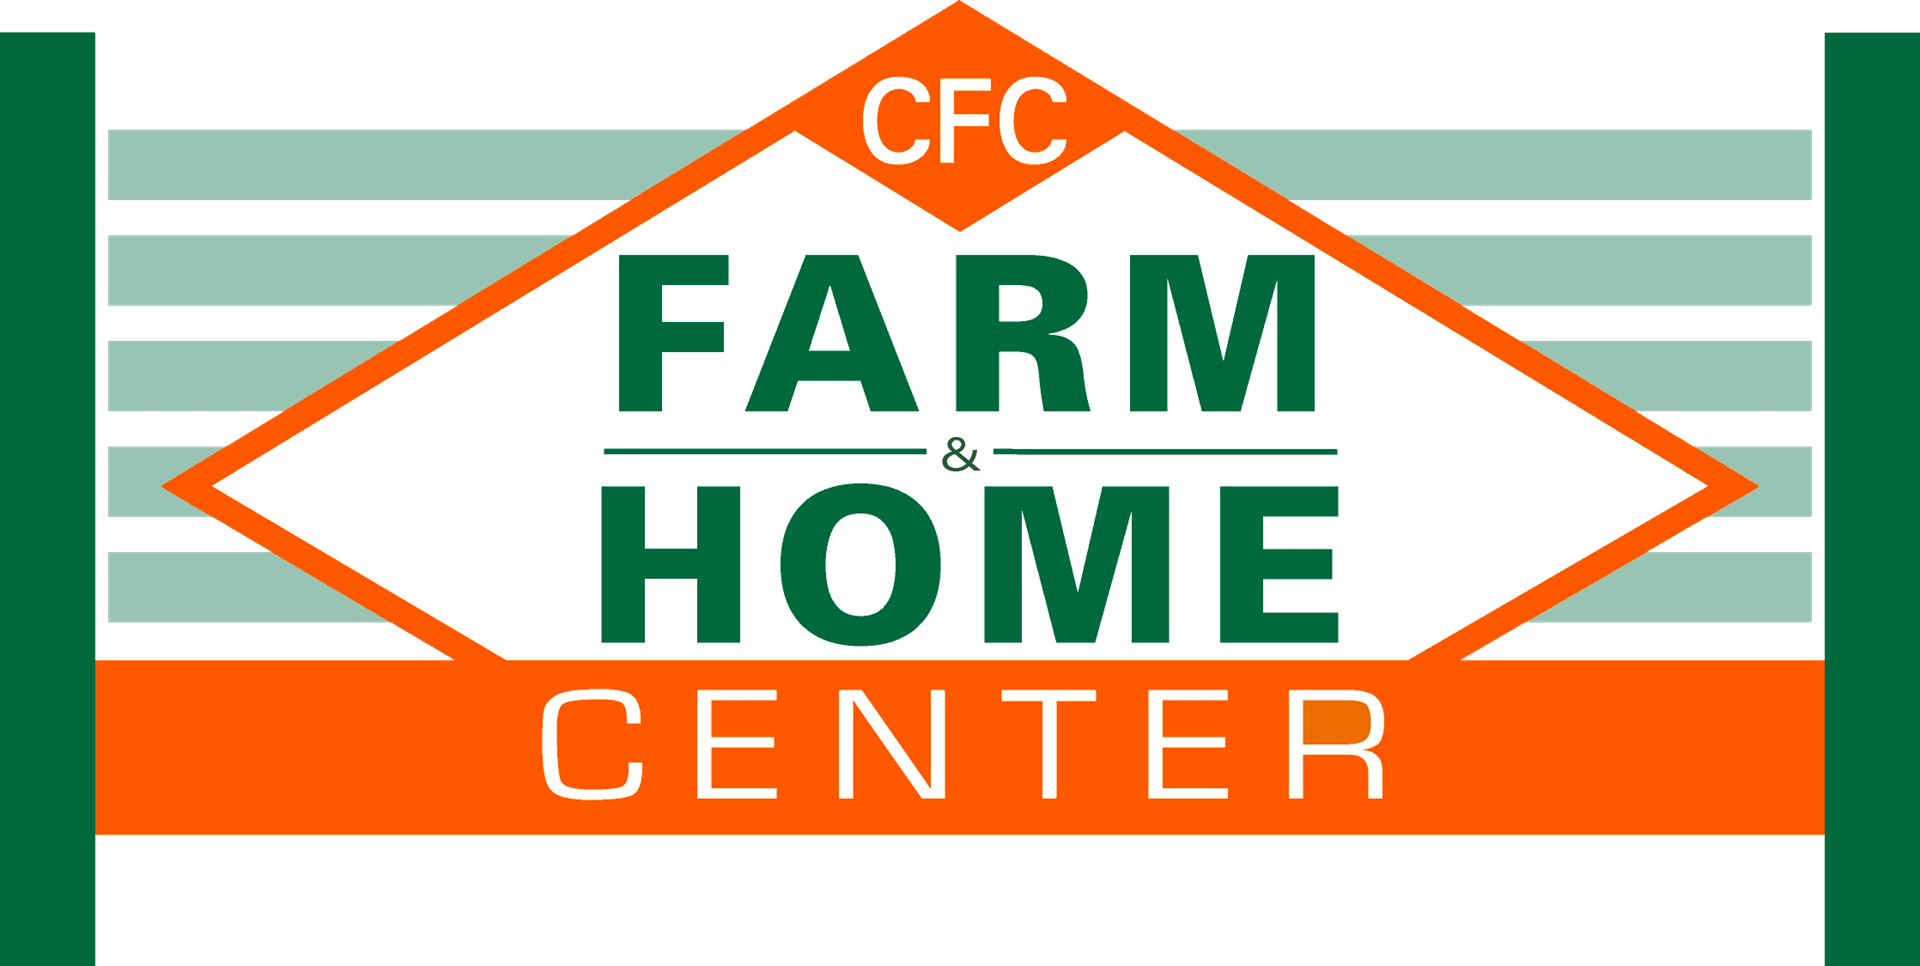 CFC Farm Home Center Logo